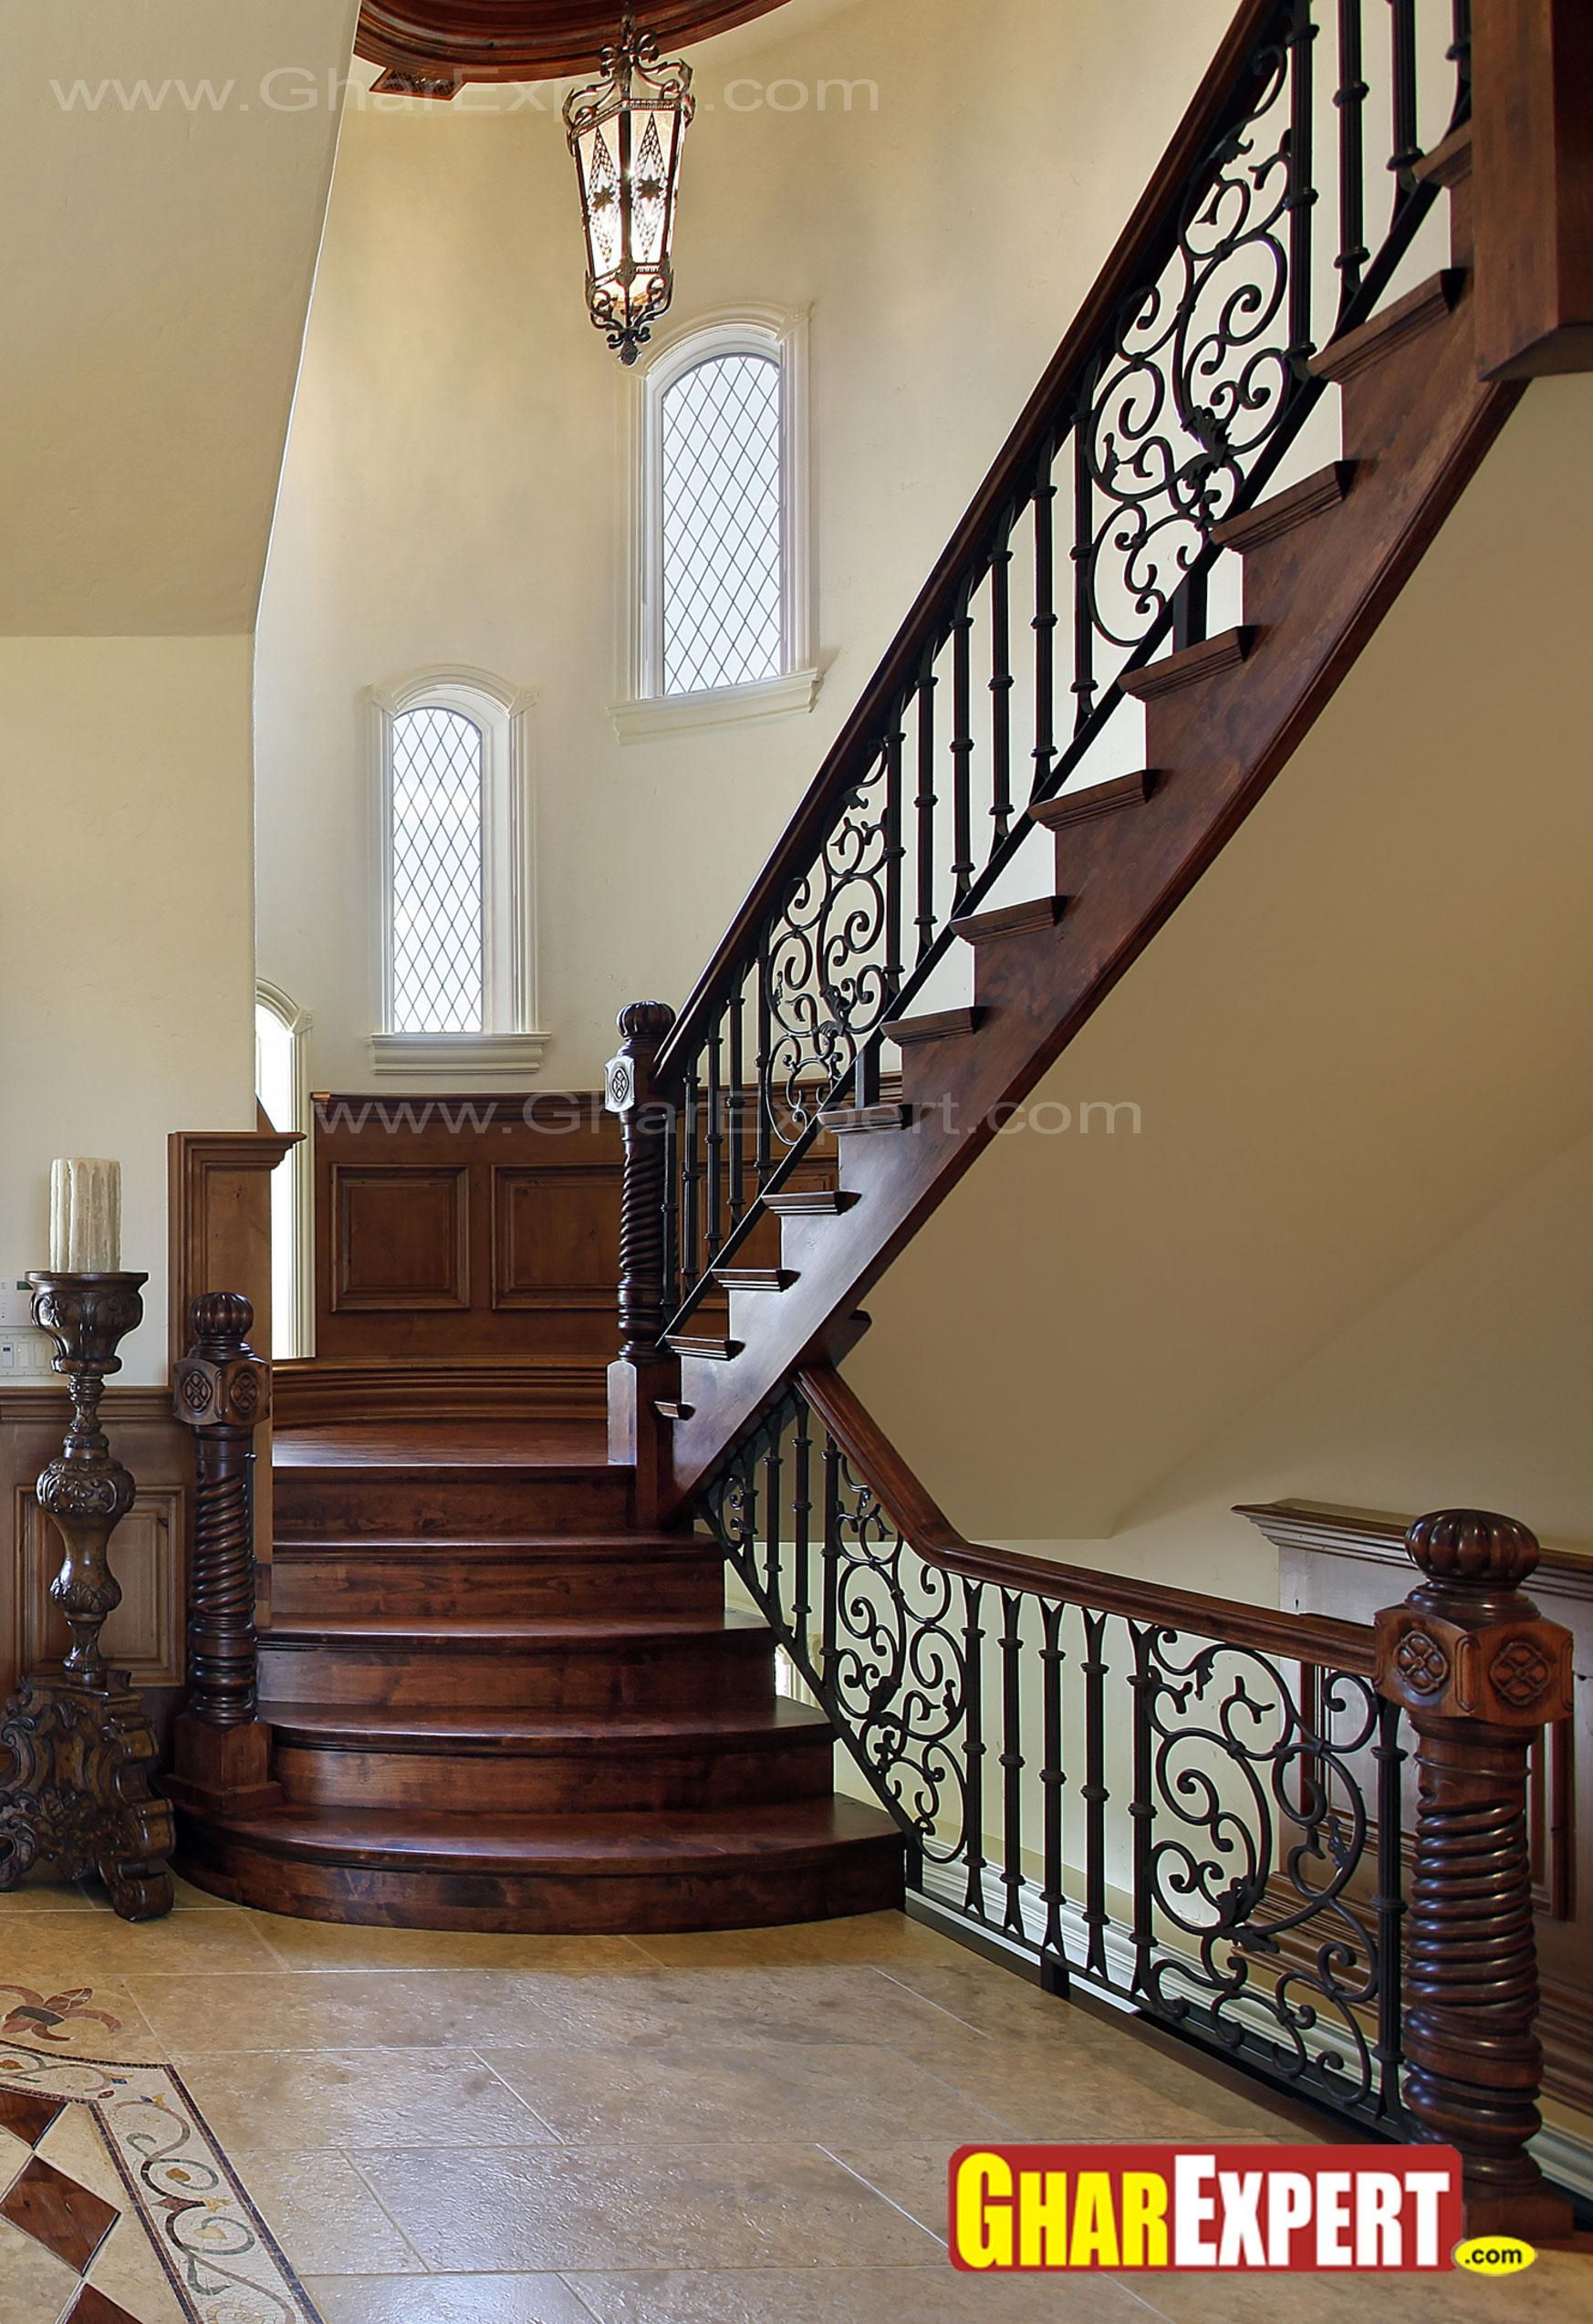 Best Wood Staircase Railing Designs Google Search Diy Stair 400 x 300